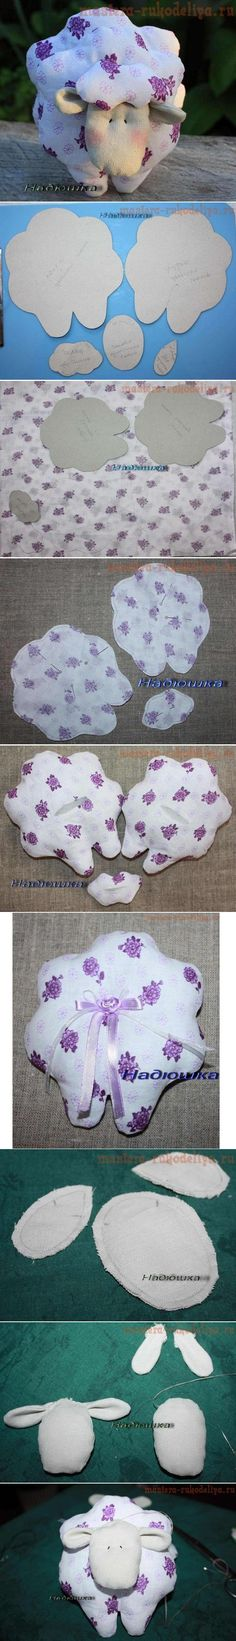 DIY Fabric Sheep Toy DIY Fabric Sheep Toy